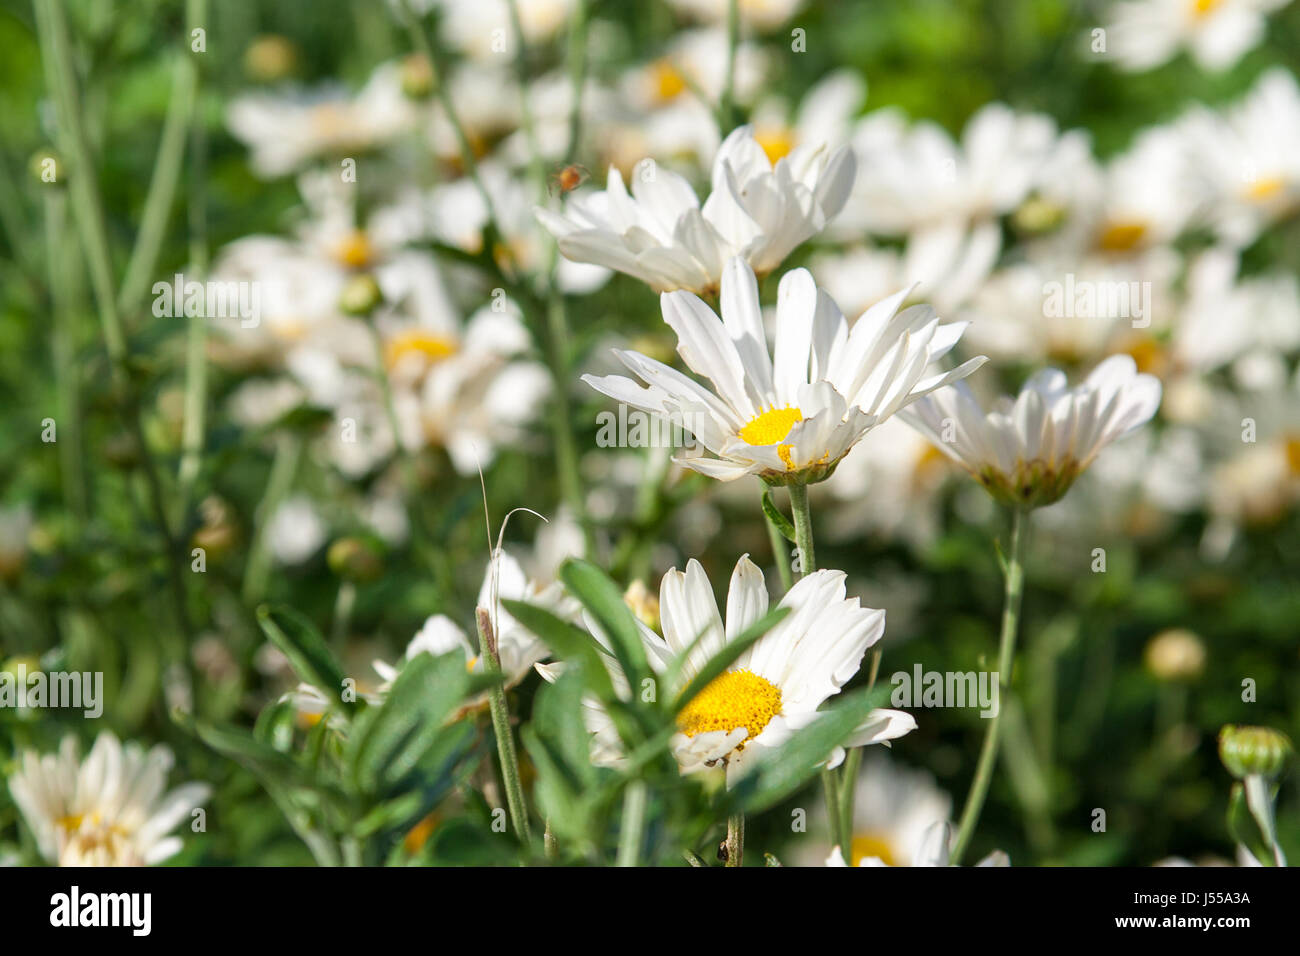 A field of white daisies - Stock Image